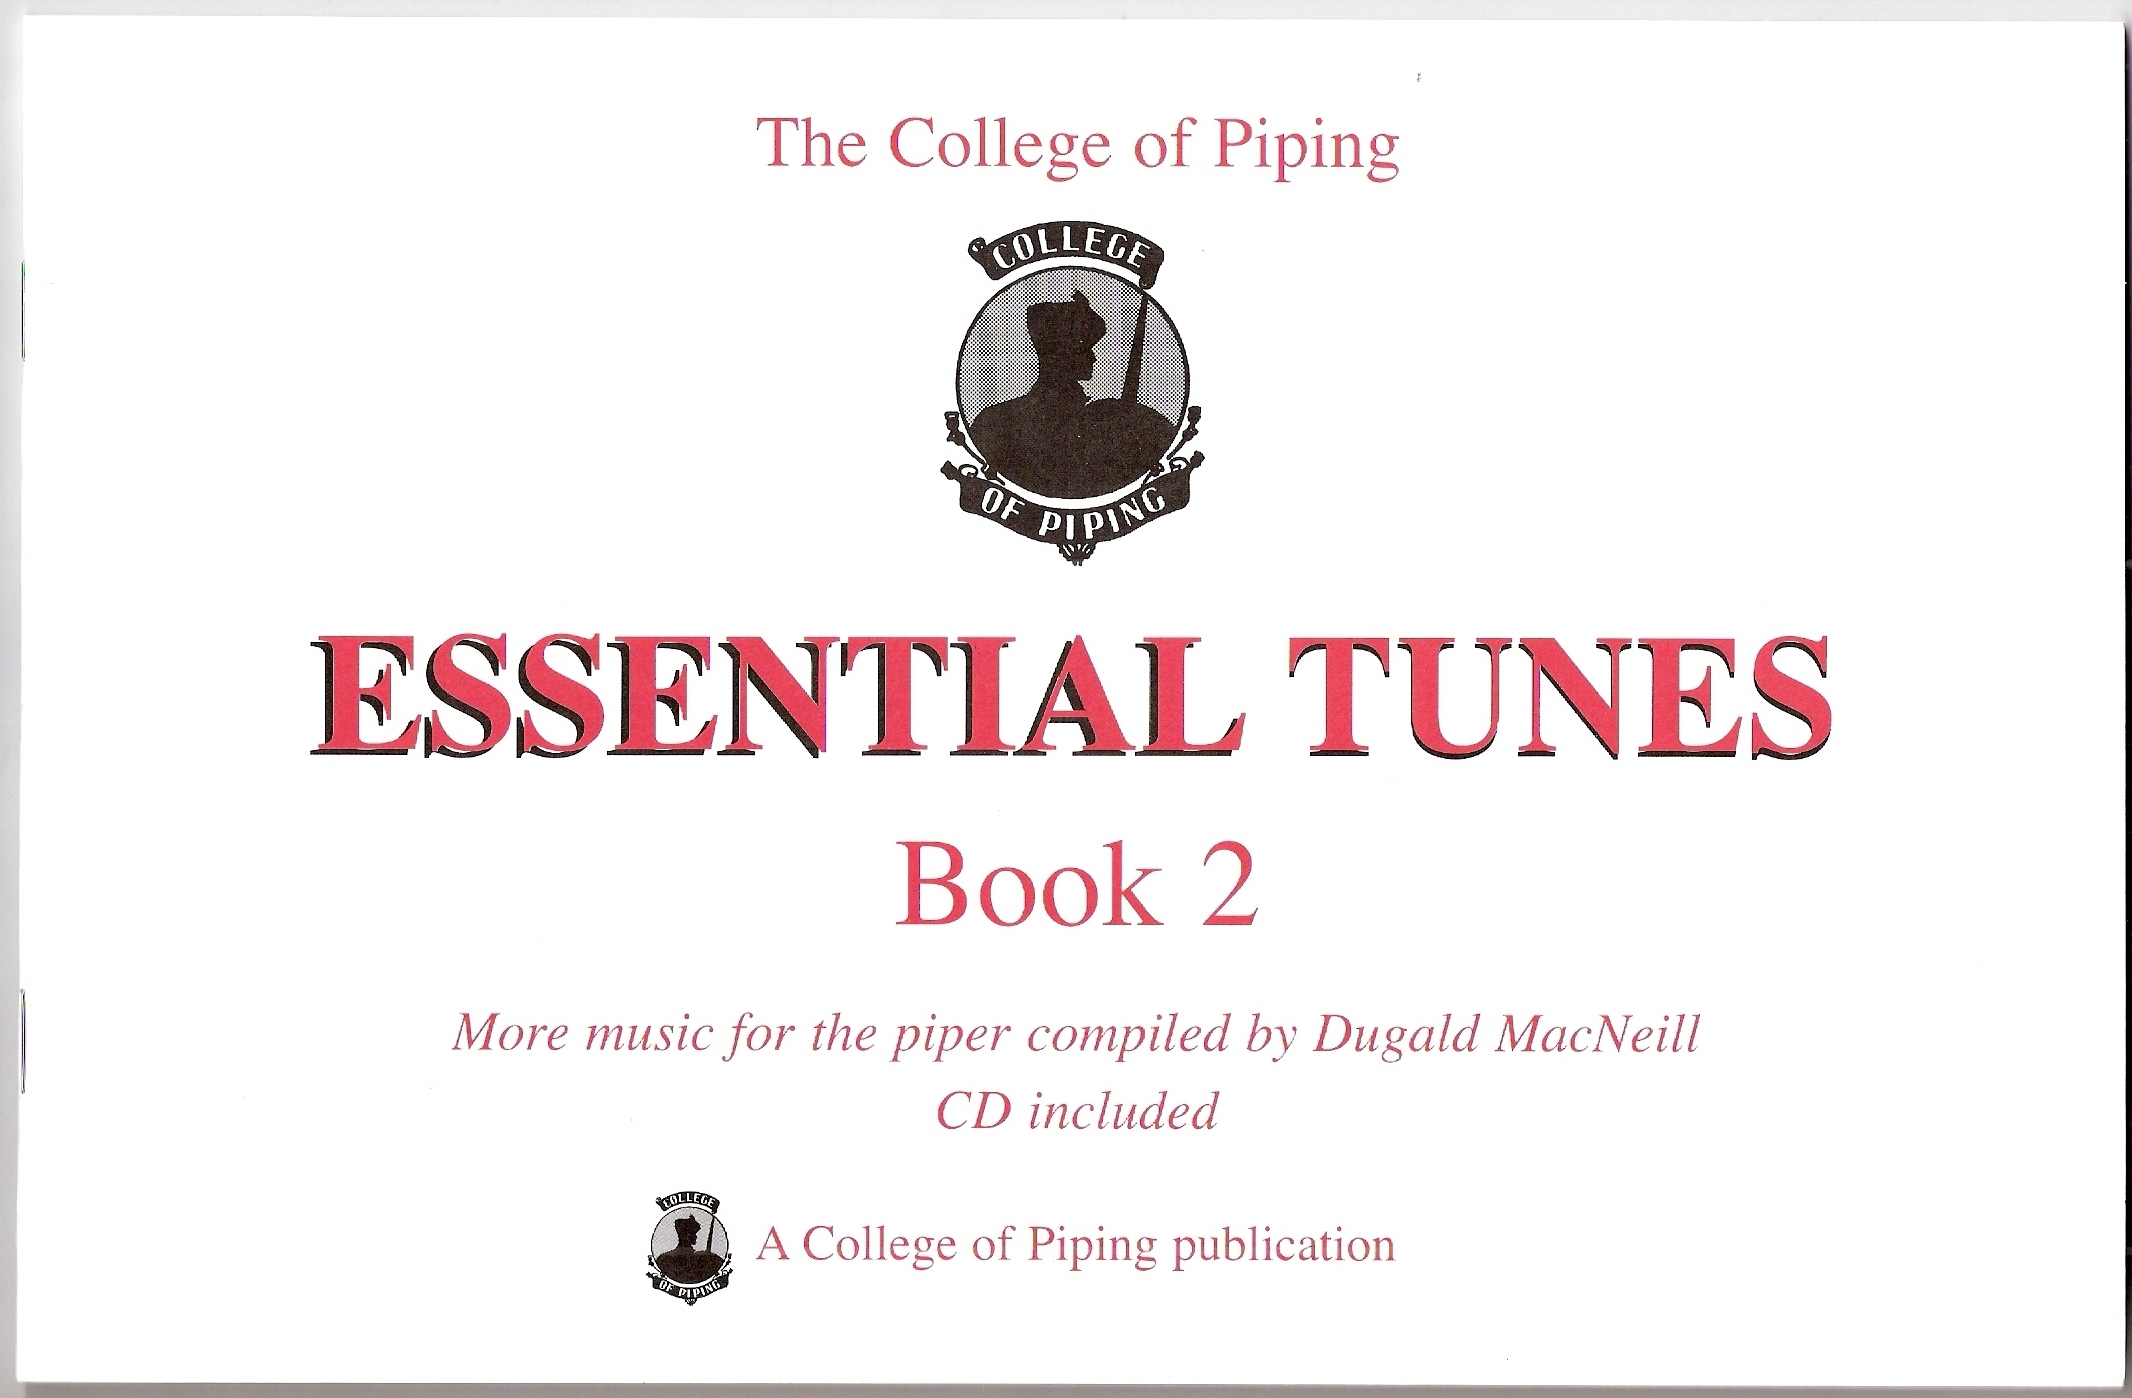 Essential Tunes Book 2 & CD